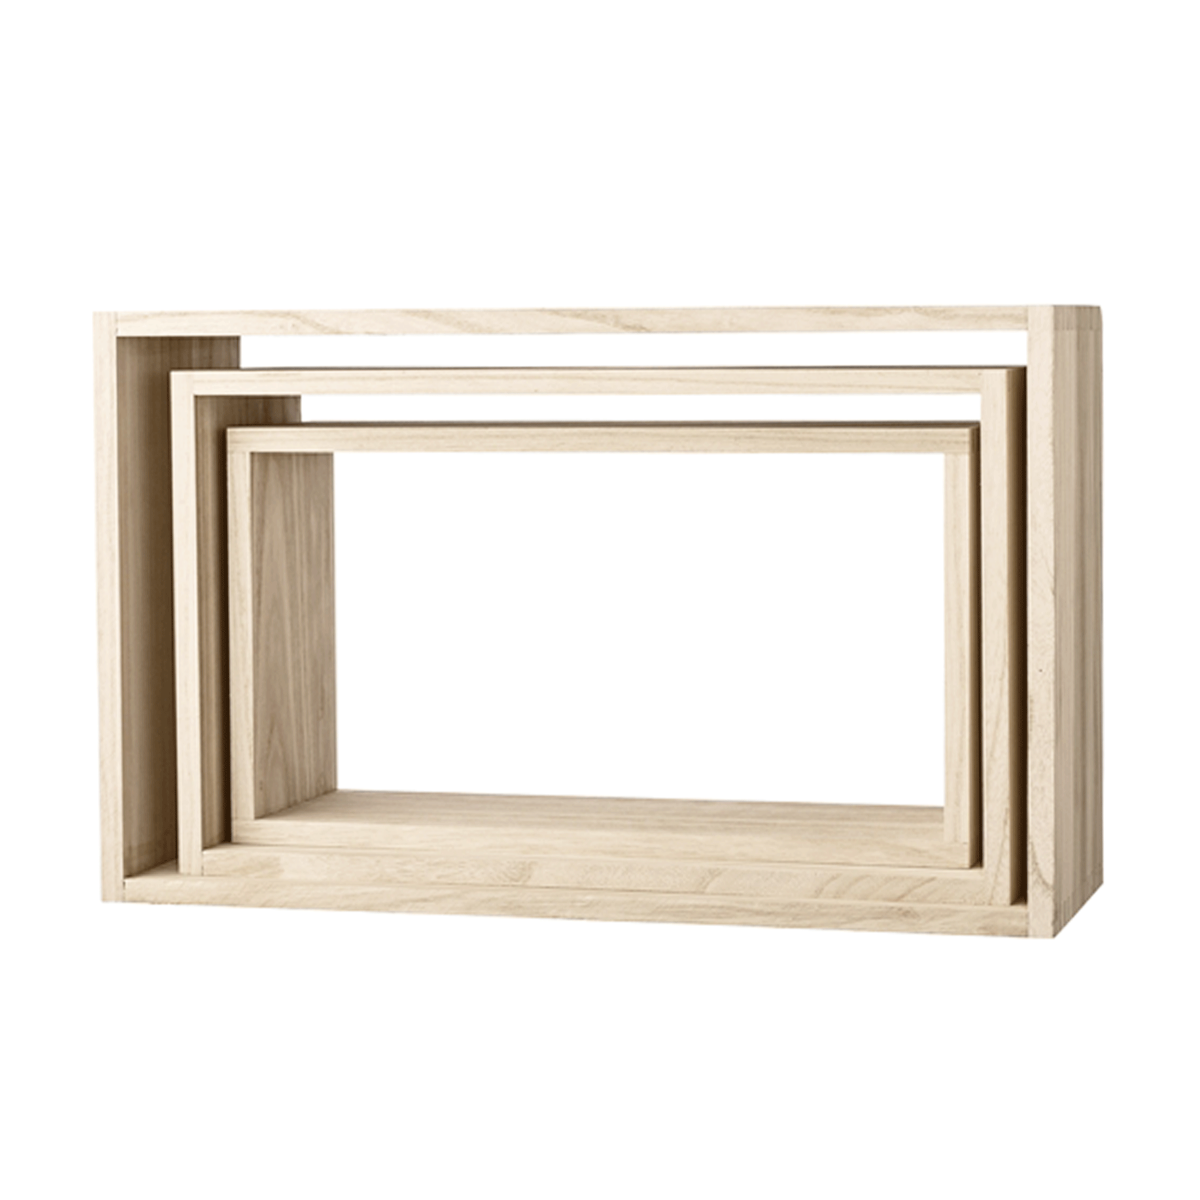 Etag re murale en bois naturel rectangulaire for Etagere bois brut